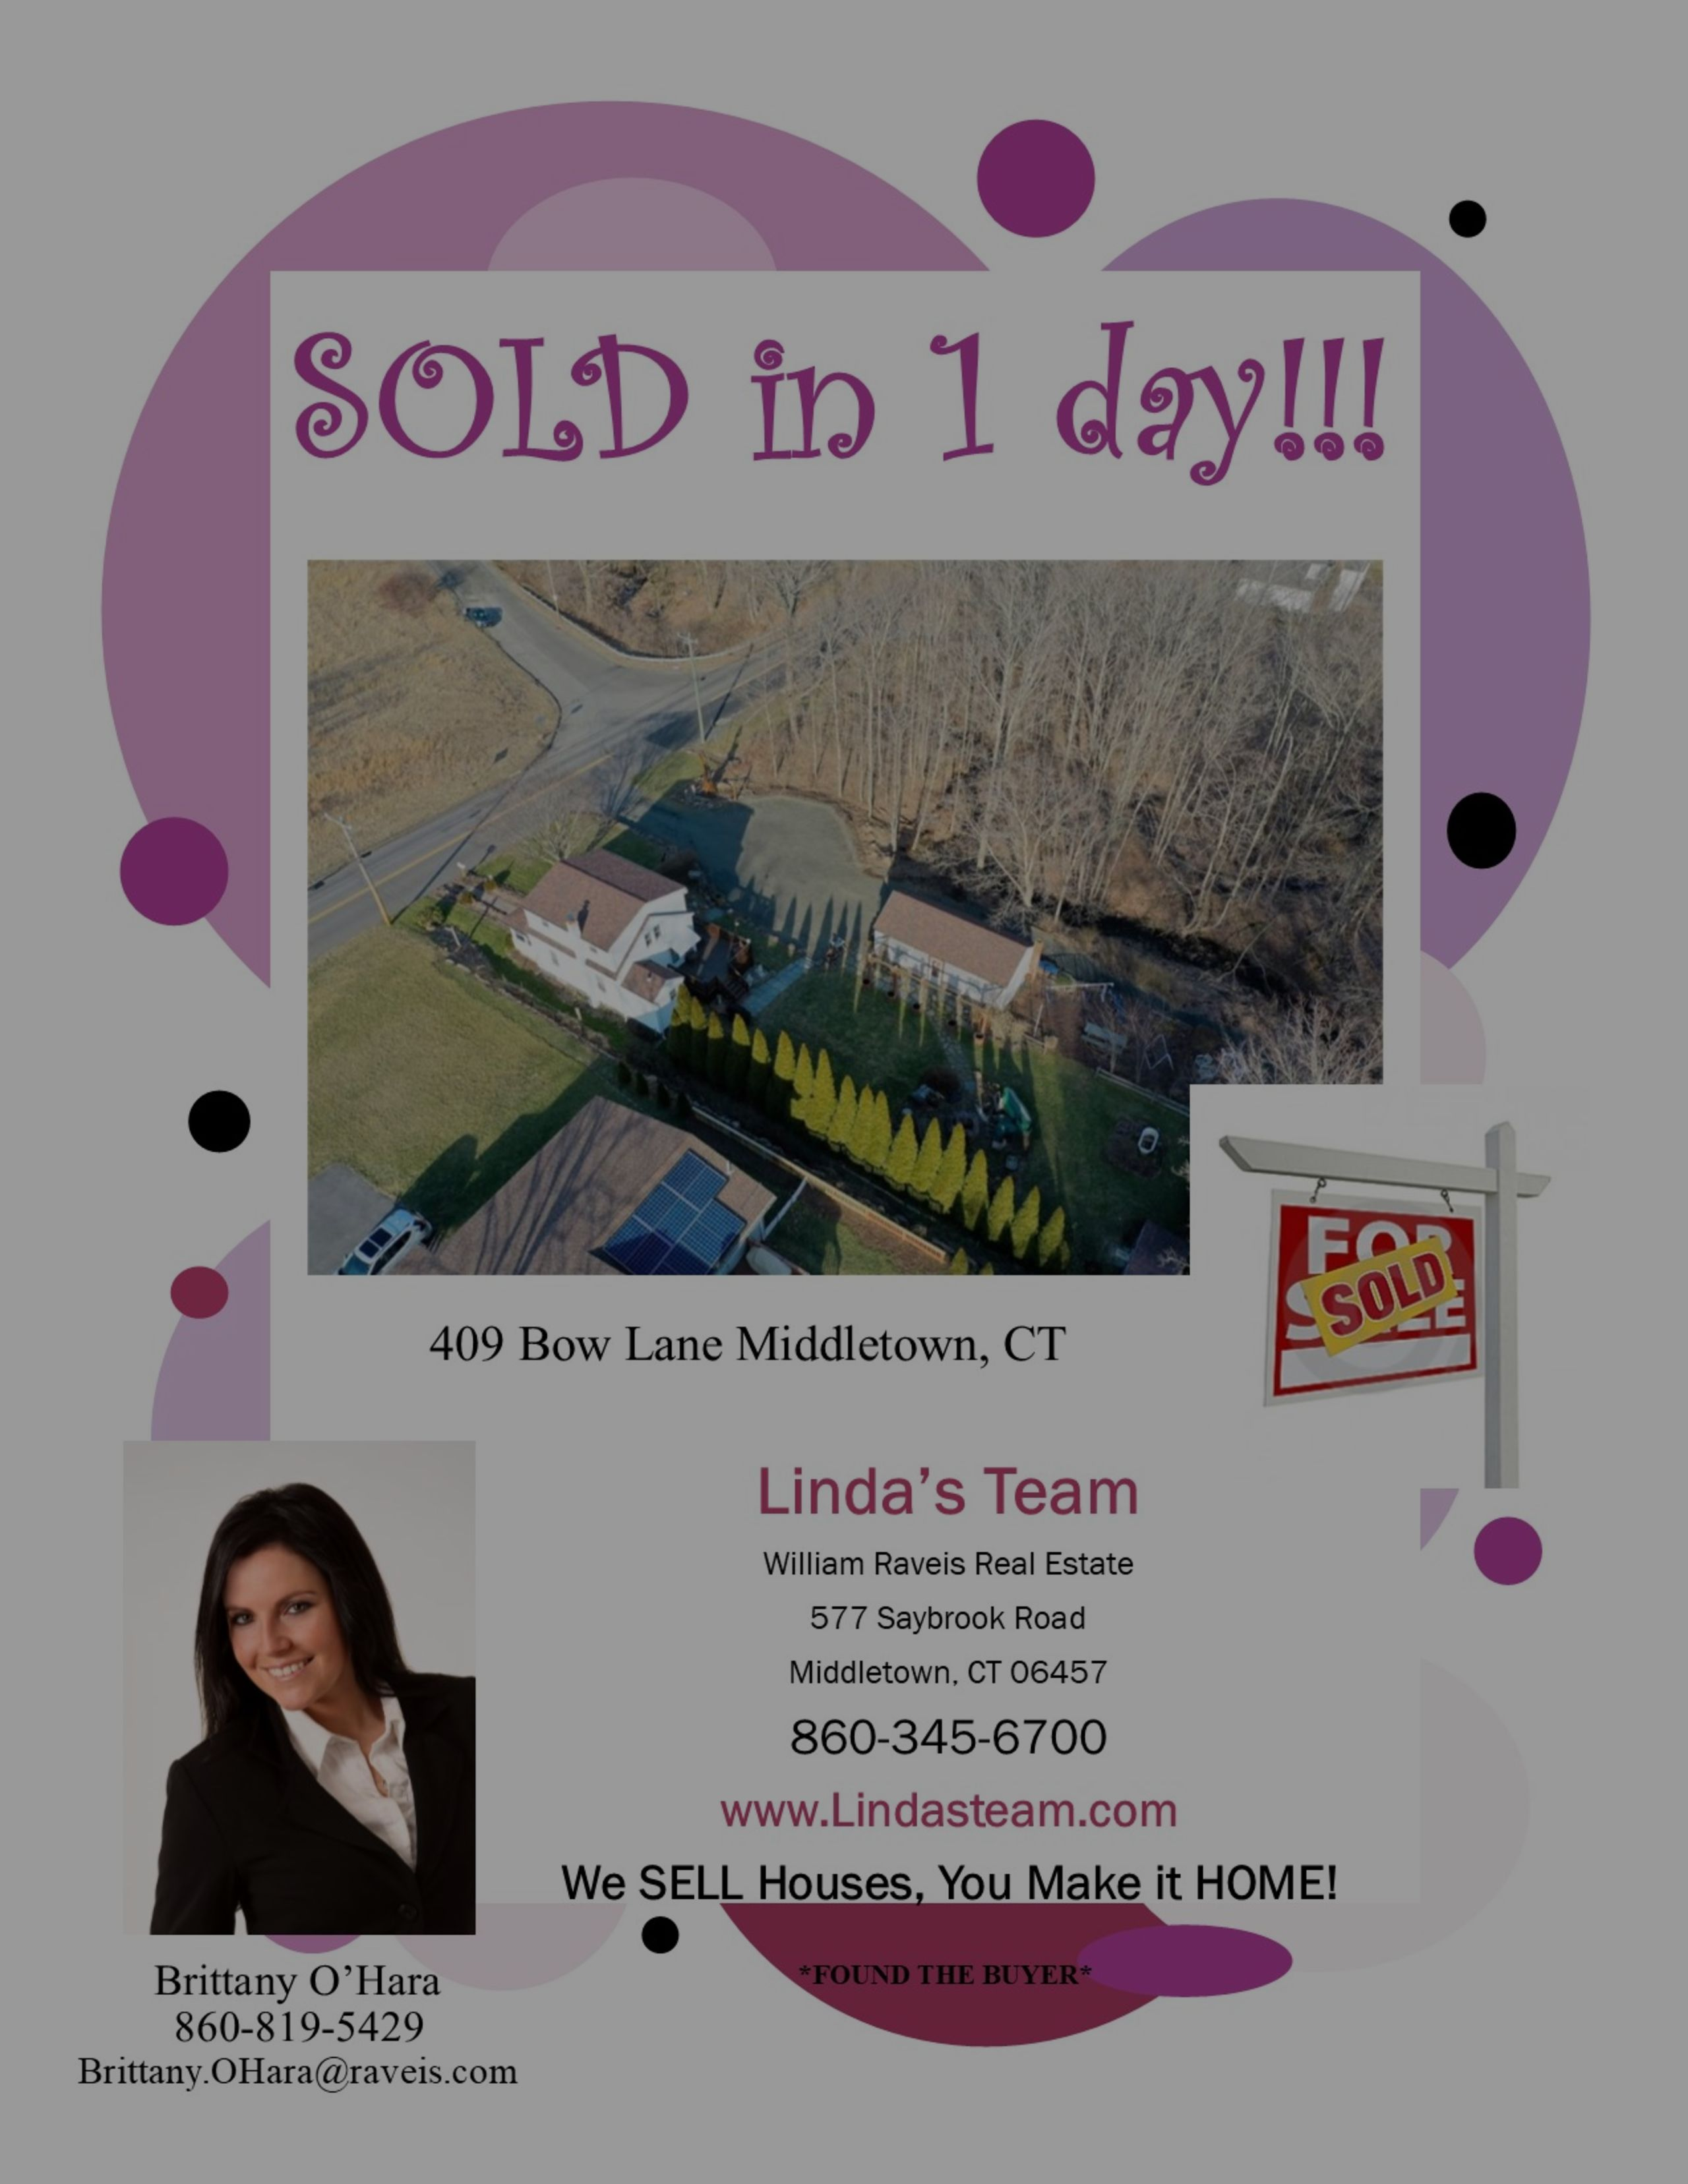 SOLD in 1 Days in Middletown!